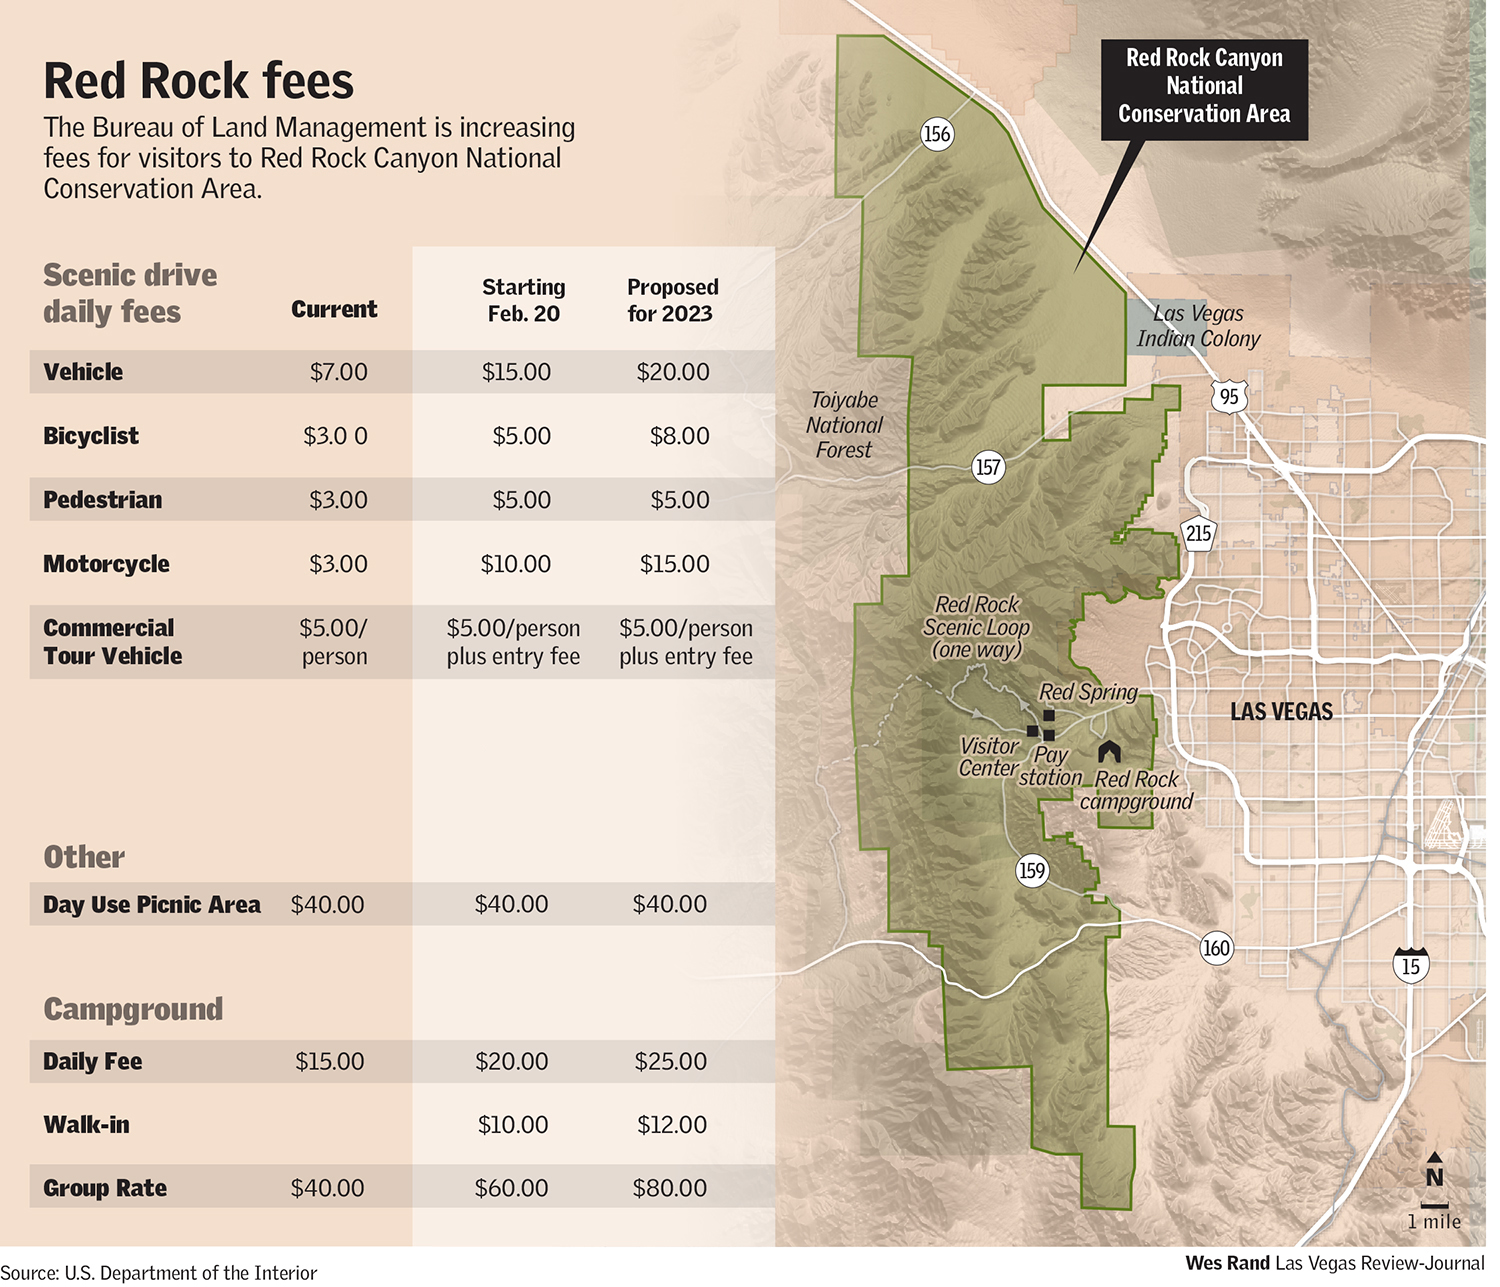 Red Rock Fees